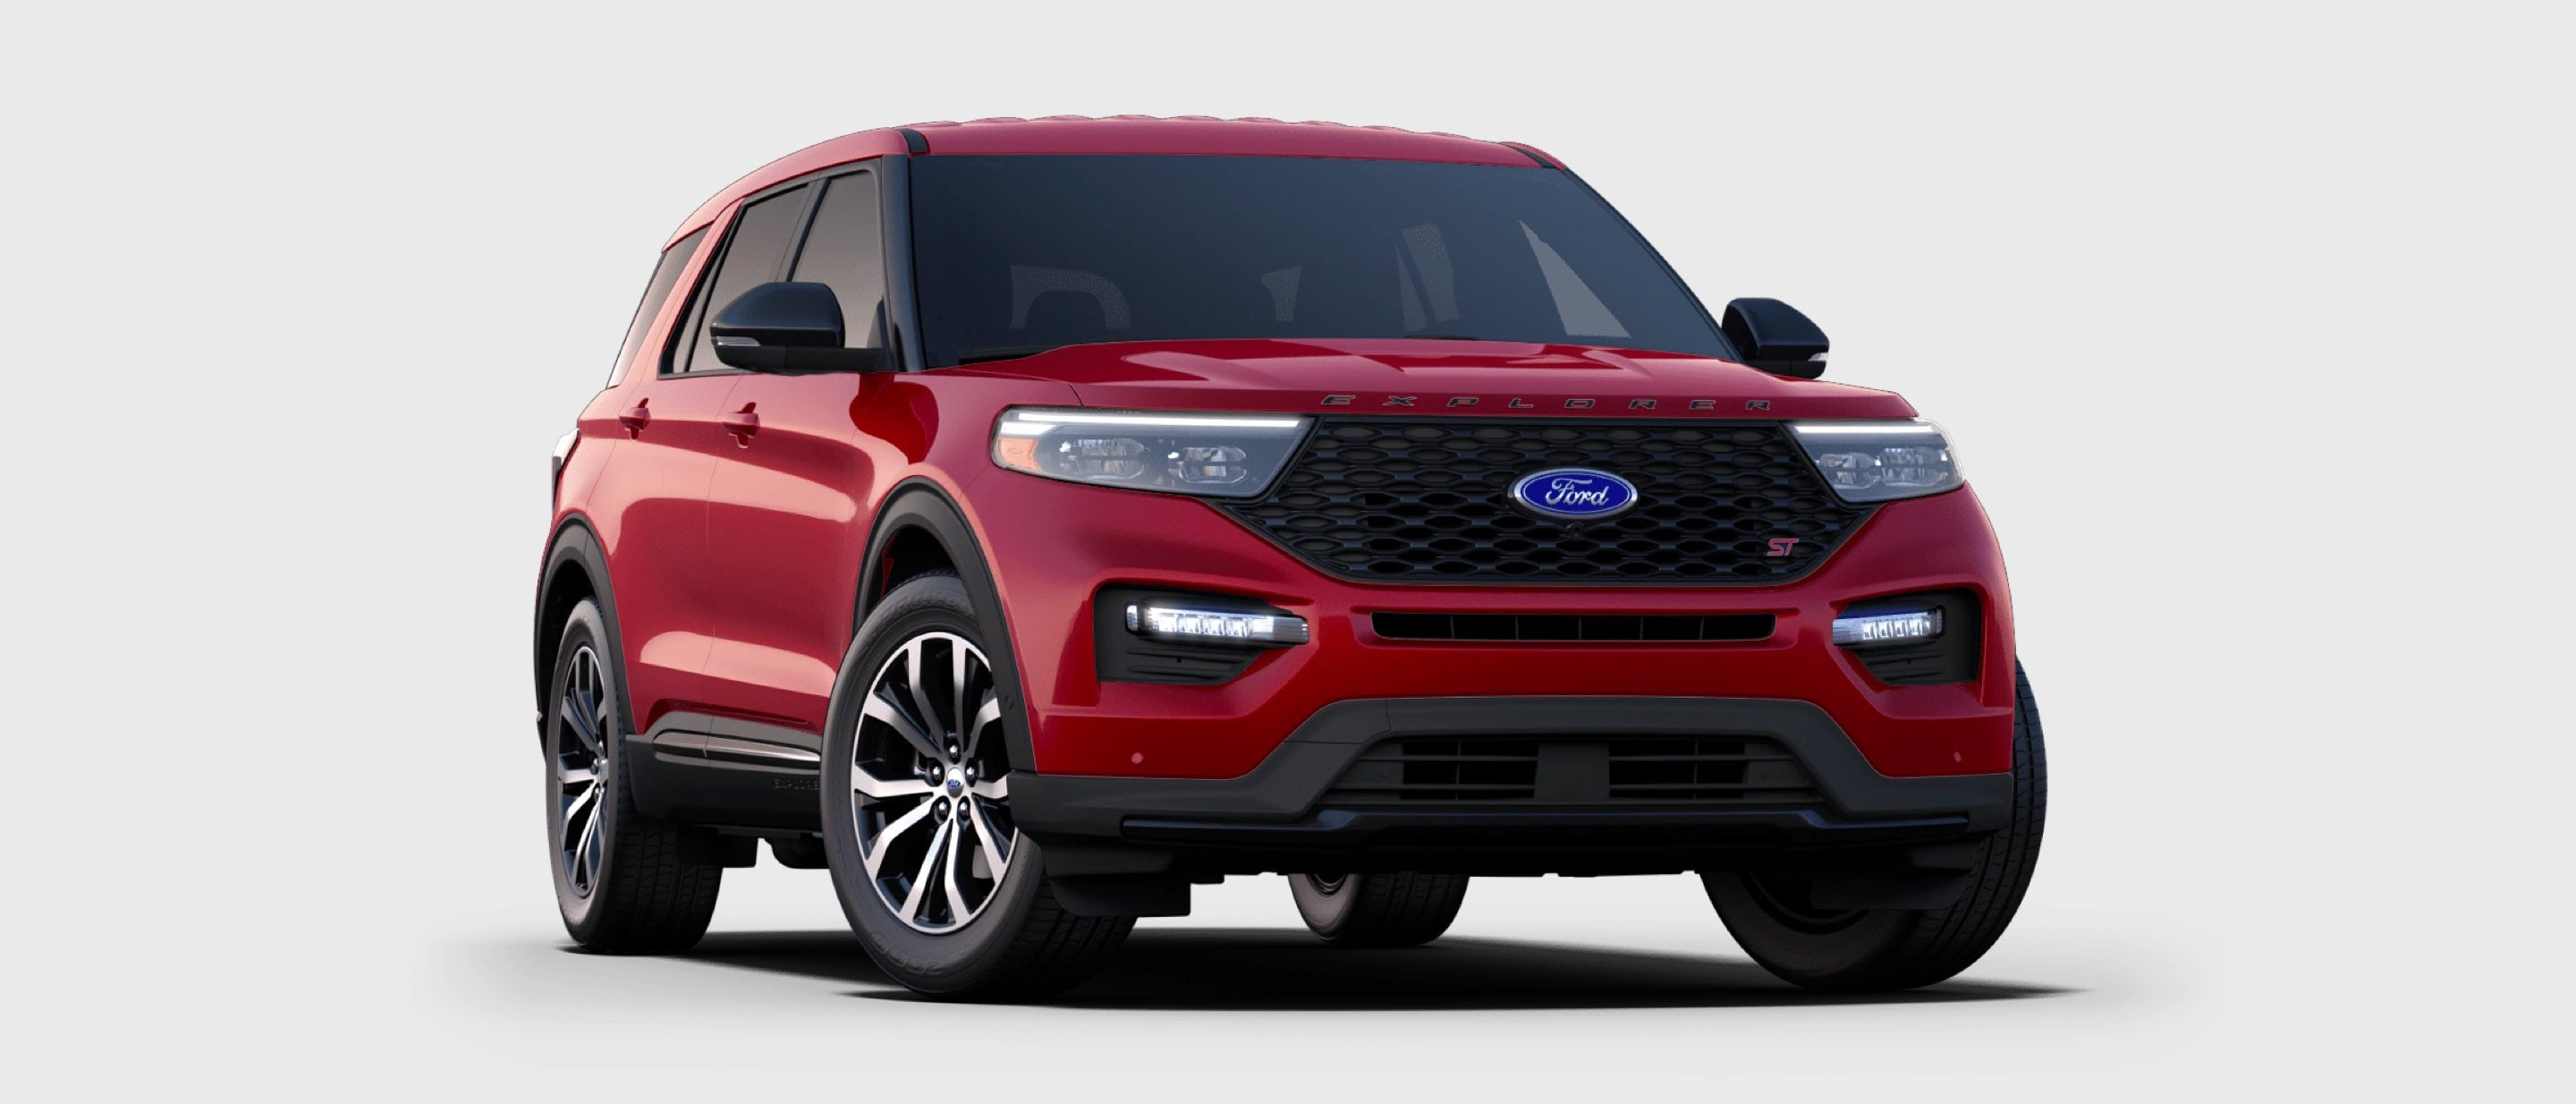 2021 Ford Explorer ST in Rapid Red